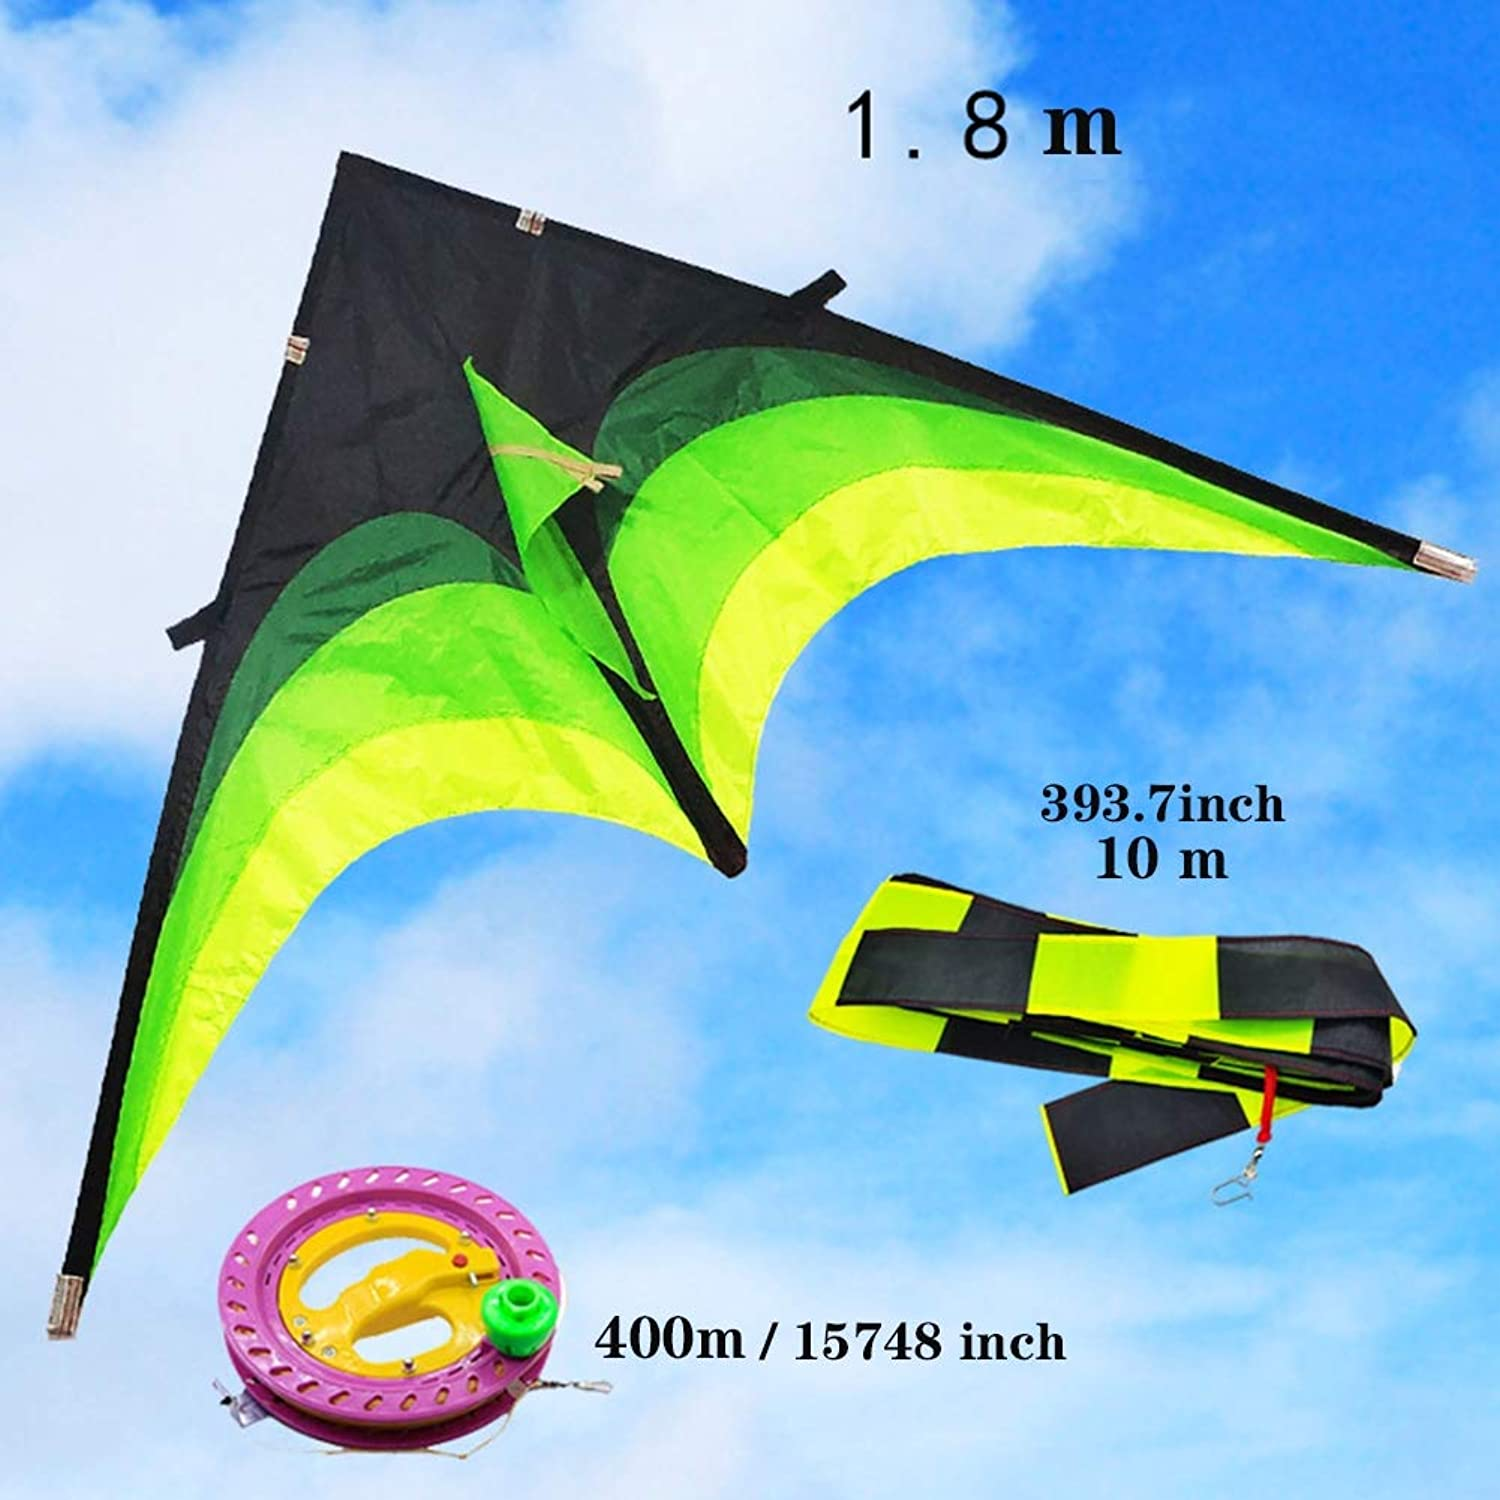 Huge Triangle Kite for Kids and Adults with Long Tail Easy Flyer Good for Outdoor Games,A,1.8m 71inch